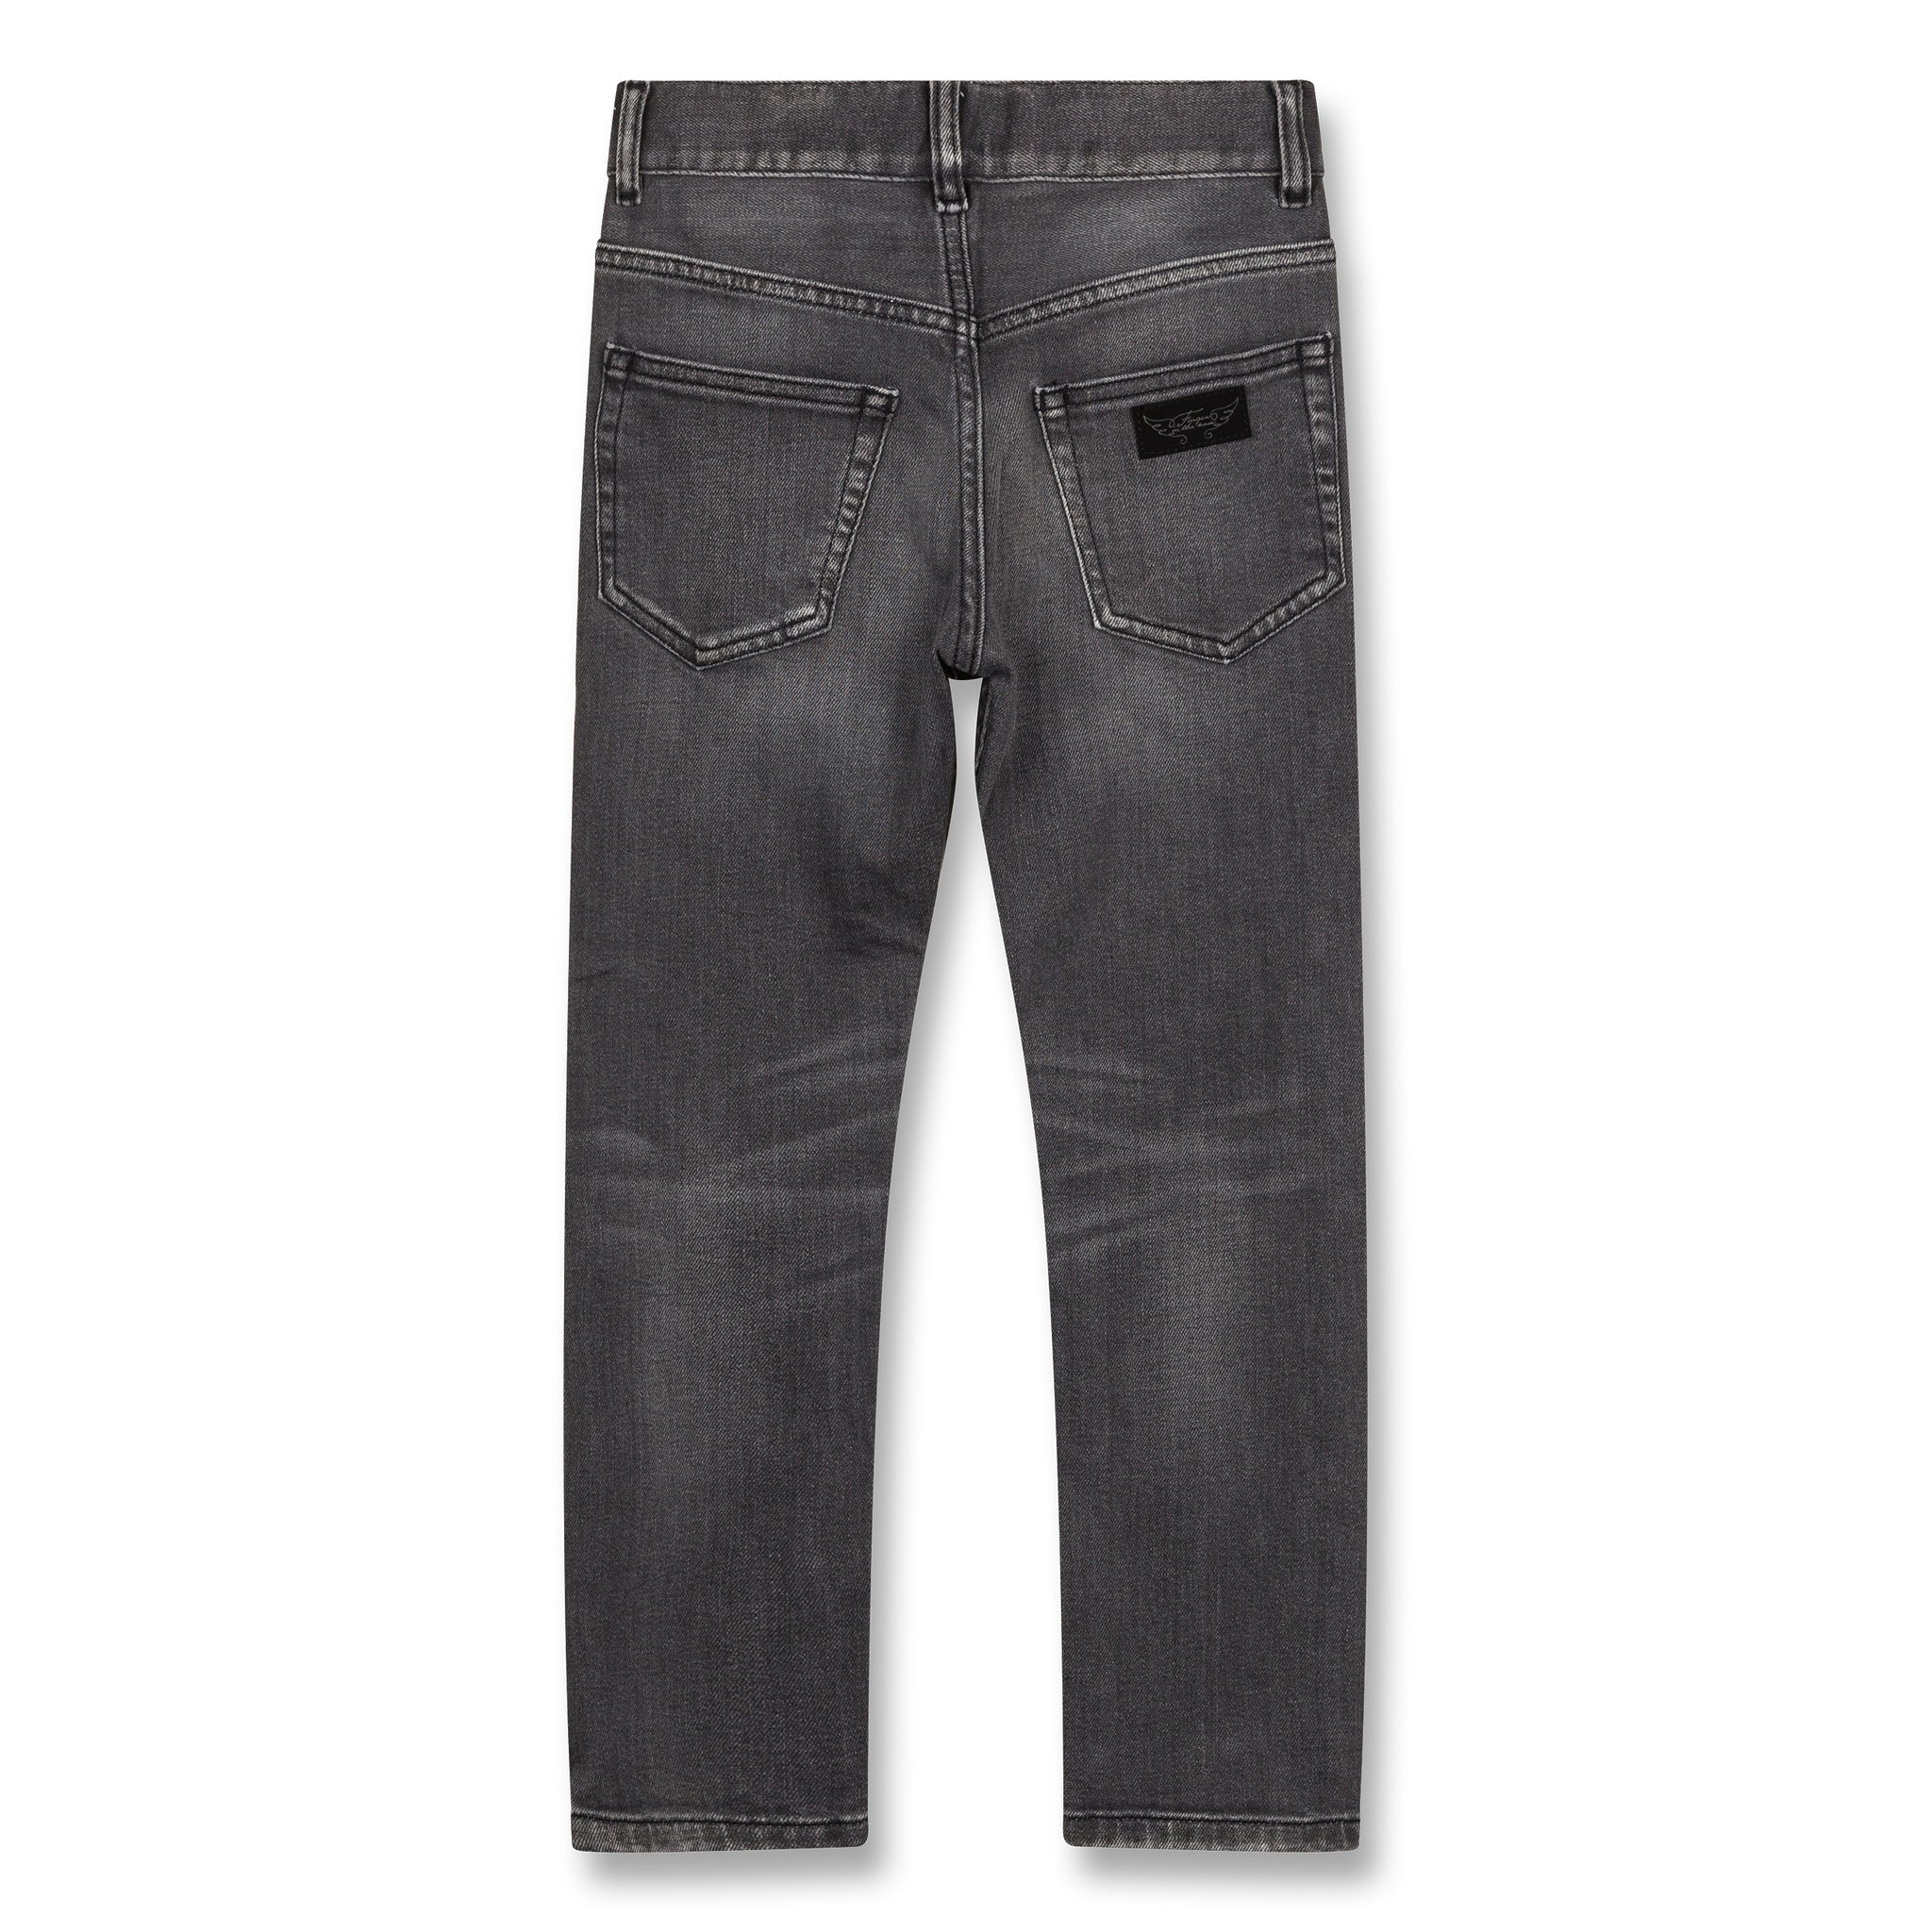 NEW NORTON Grey Denim - 5 Pocket Straight Fit Jeans 3